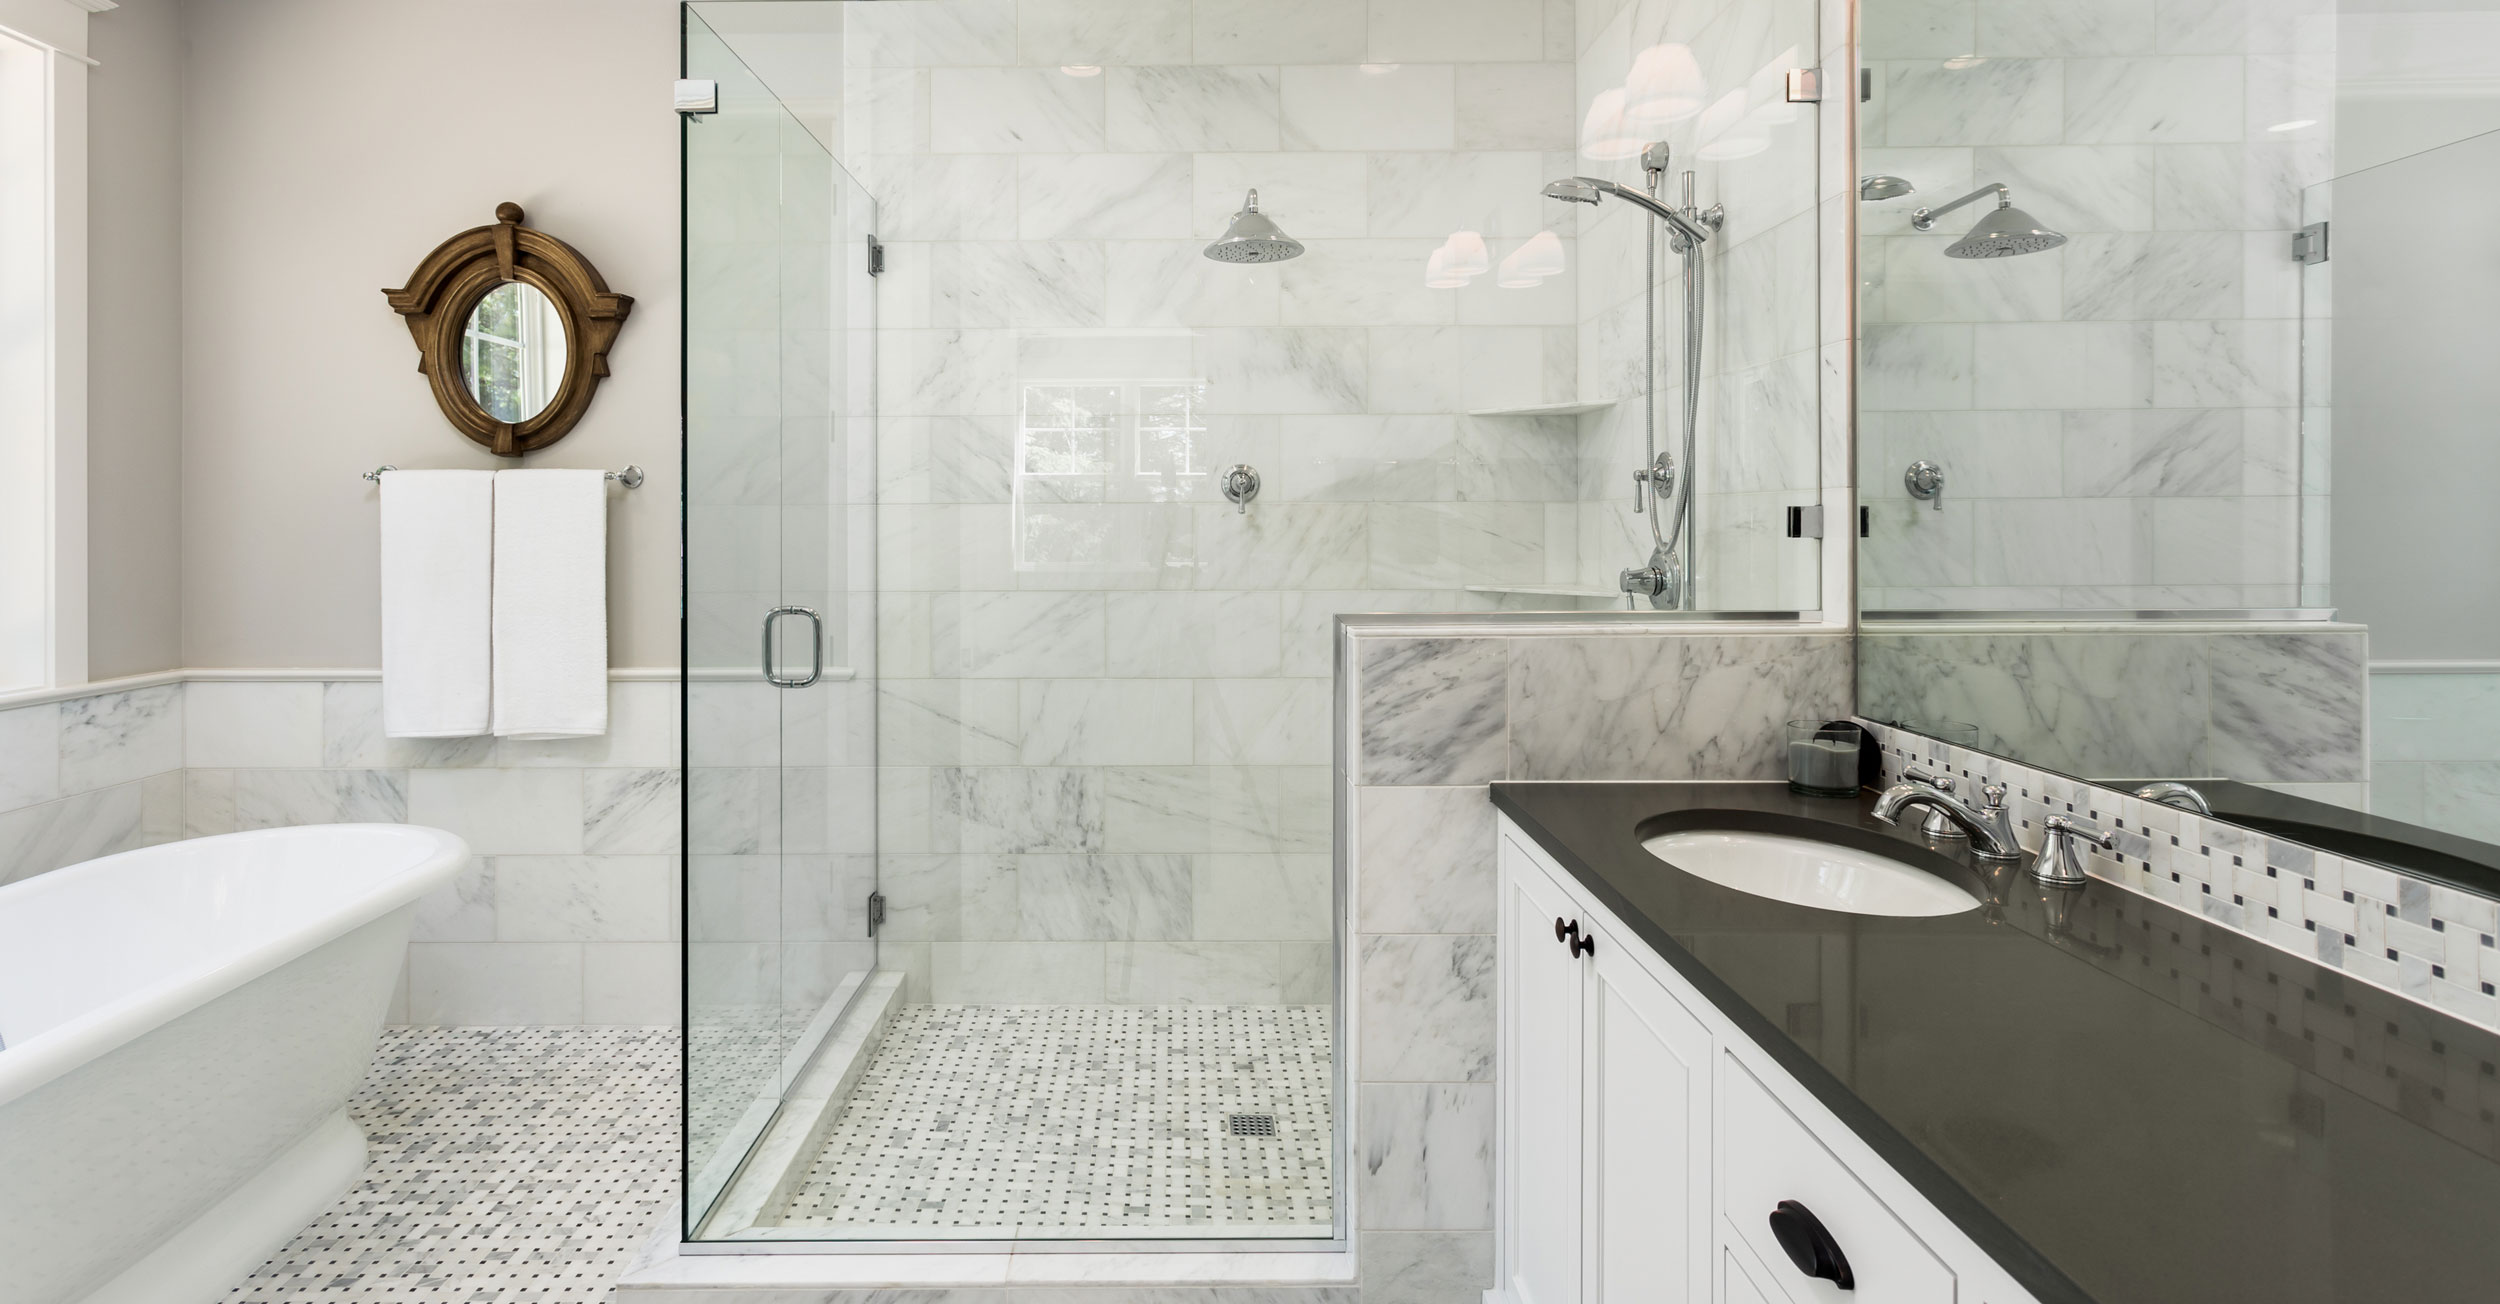 How to Choose the Ultimate Ensuite for Your Home Extension